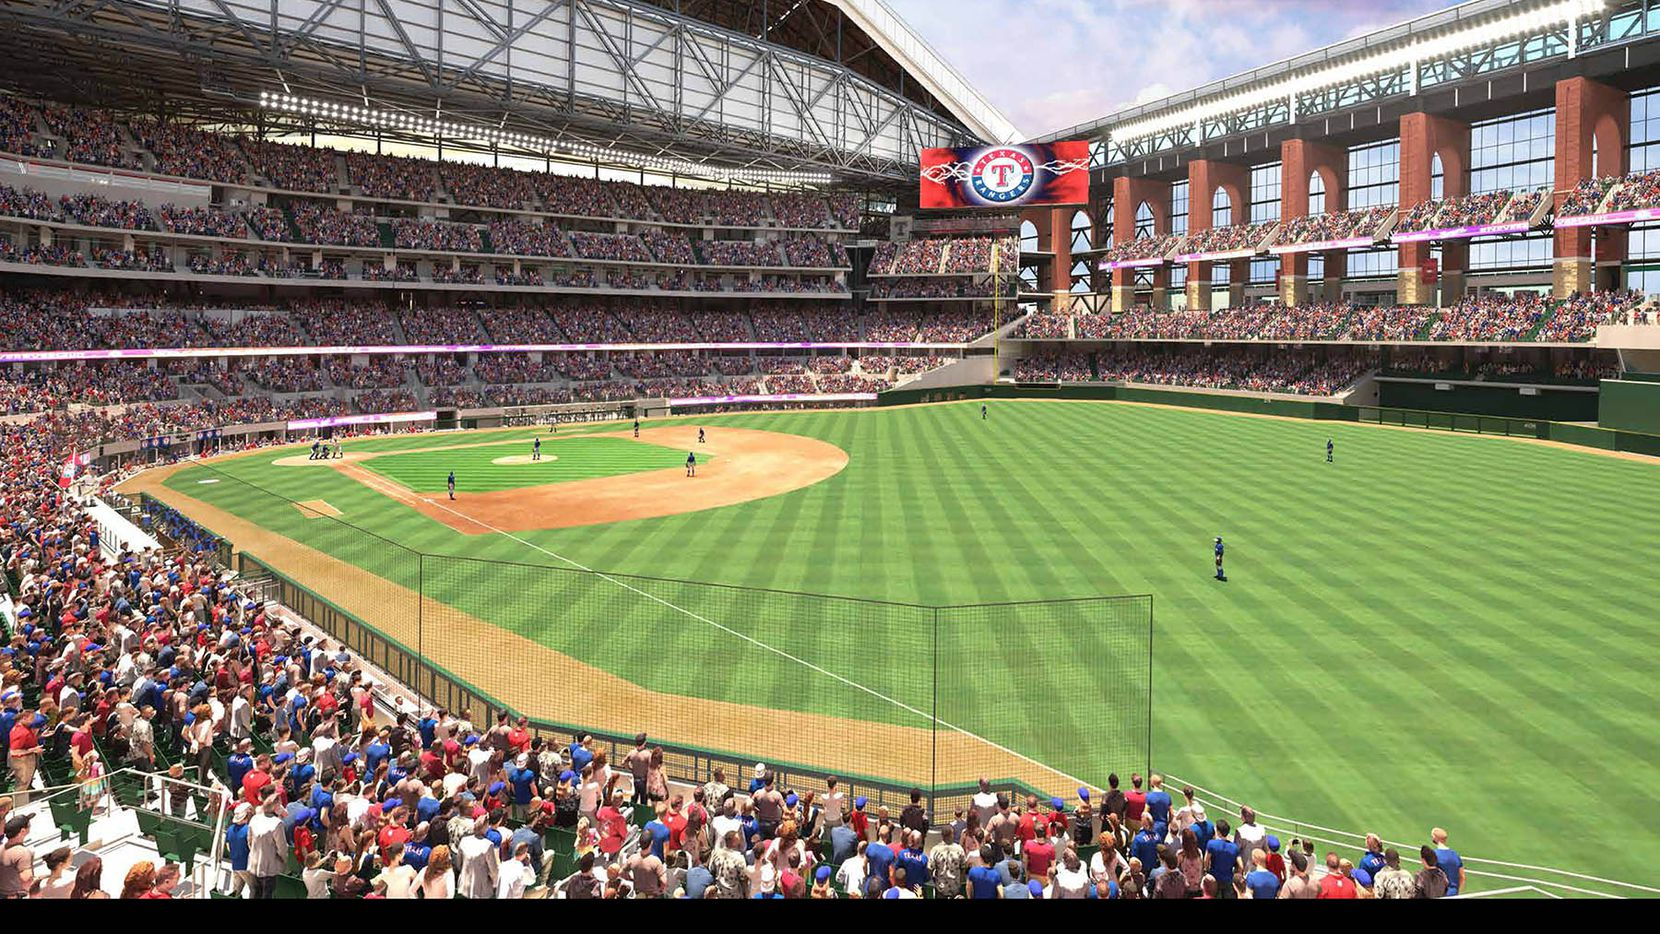 See Renderings Of The New Texas Rangers Stadium Set To Open